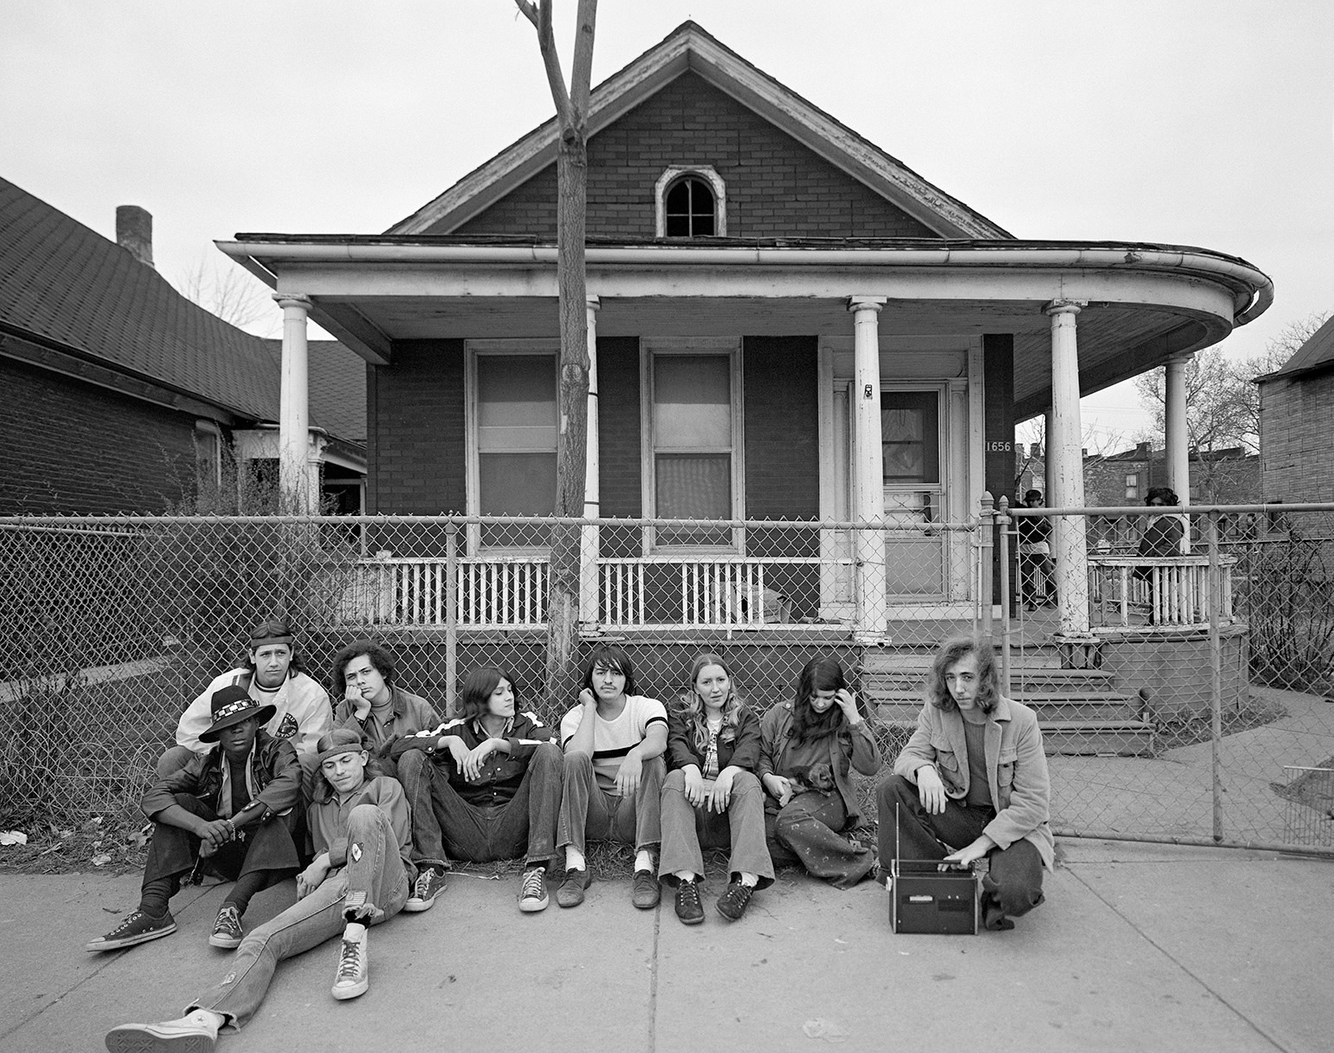 A Group of College Students, 1656 Bagley, Corktown, Detroit 1973